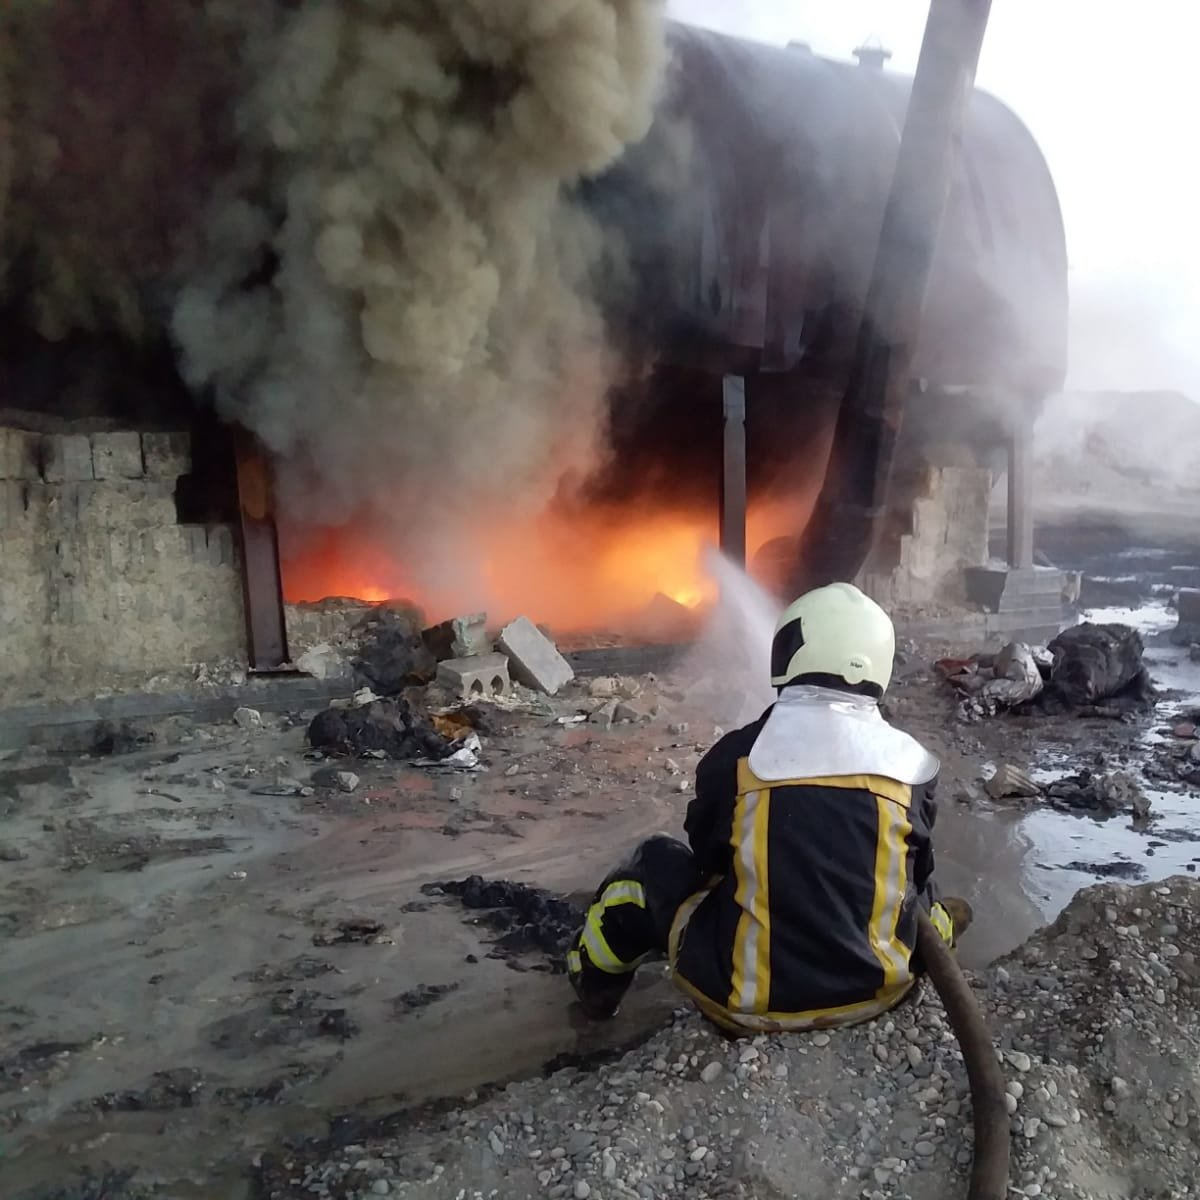 Artisanal oil refining in #Syria - dangerous and polluting.